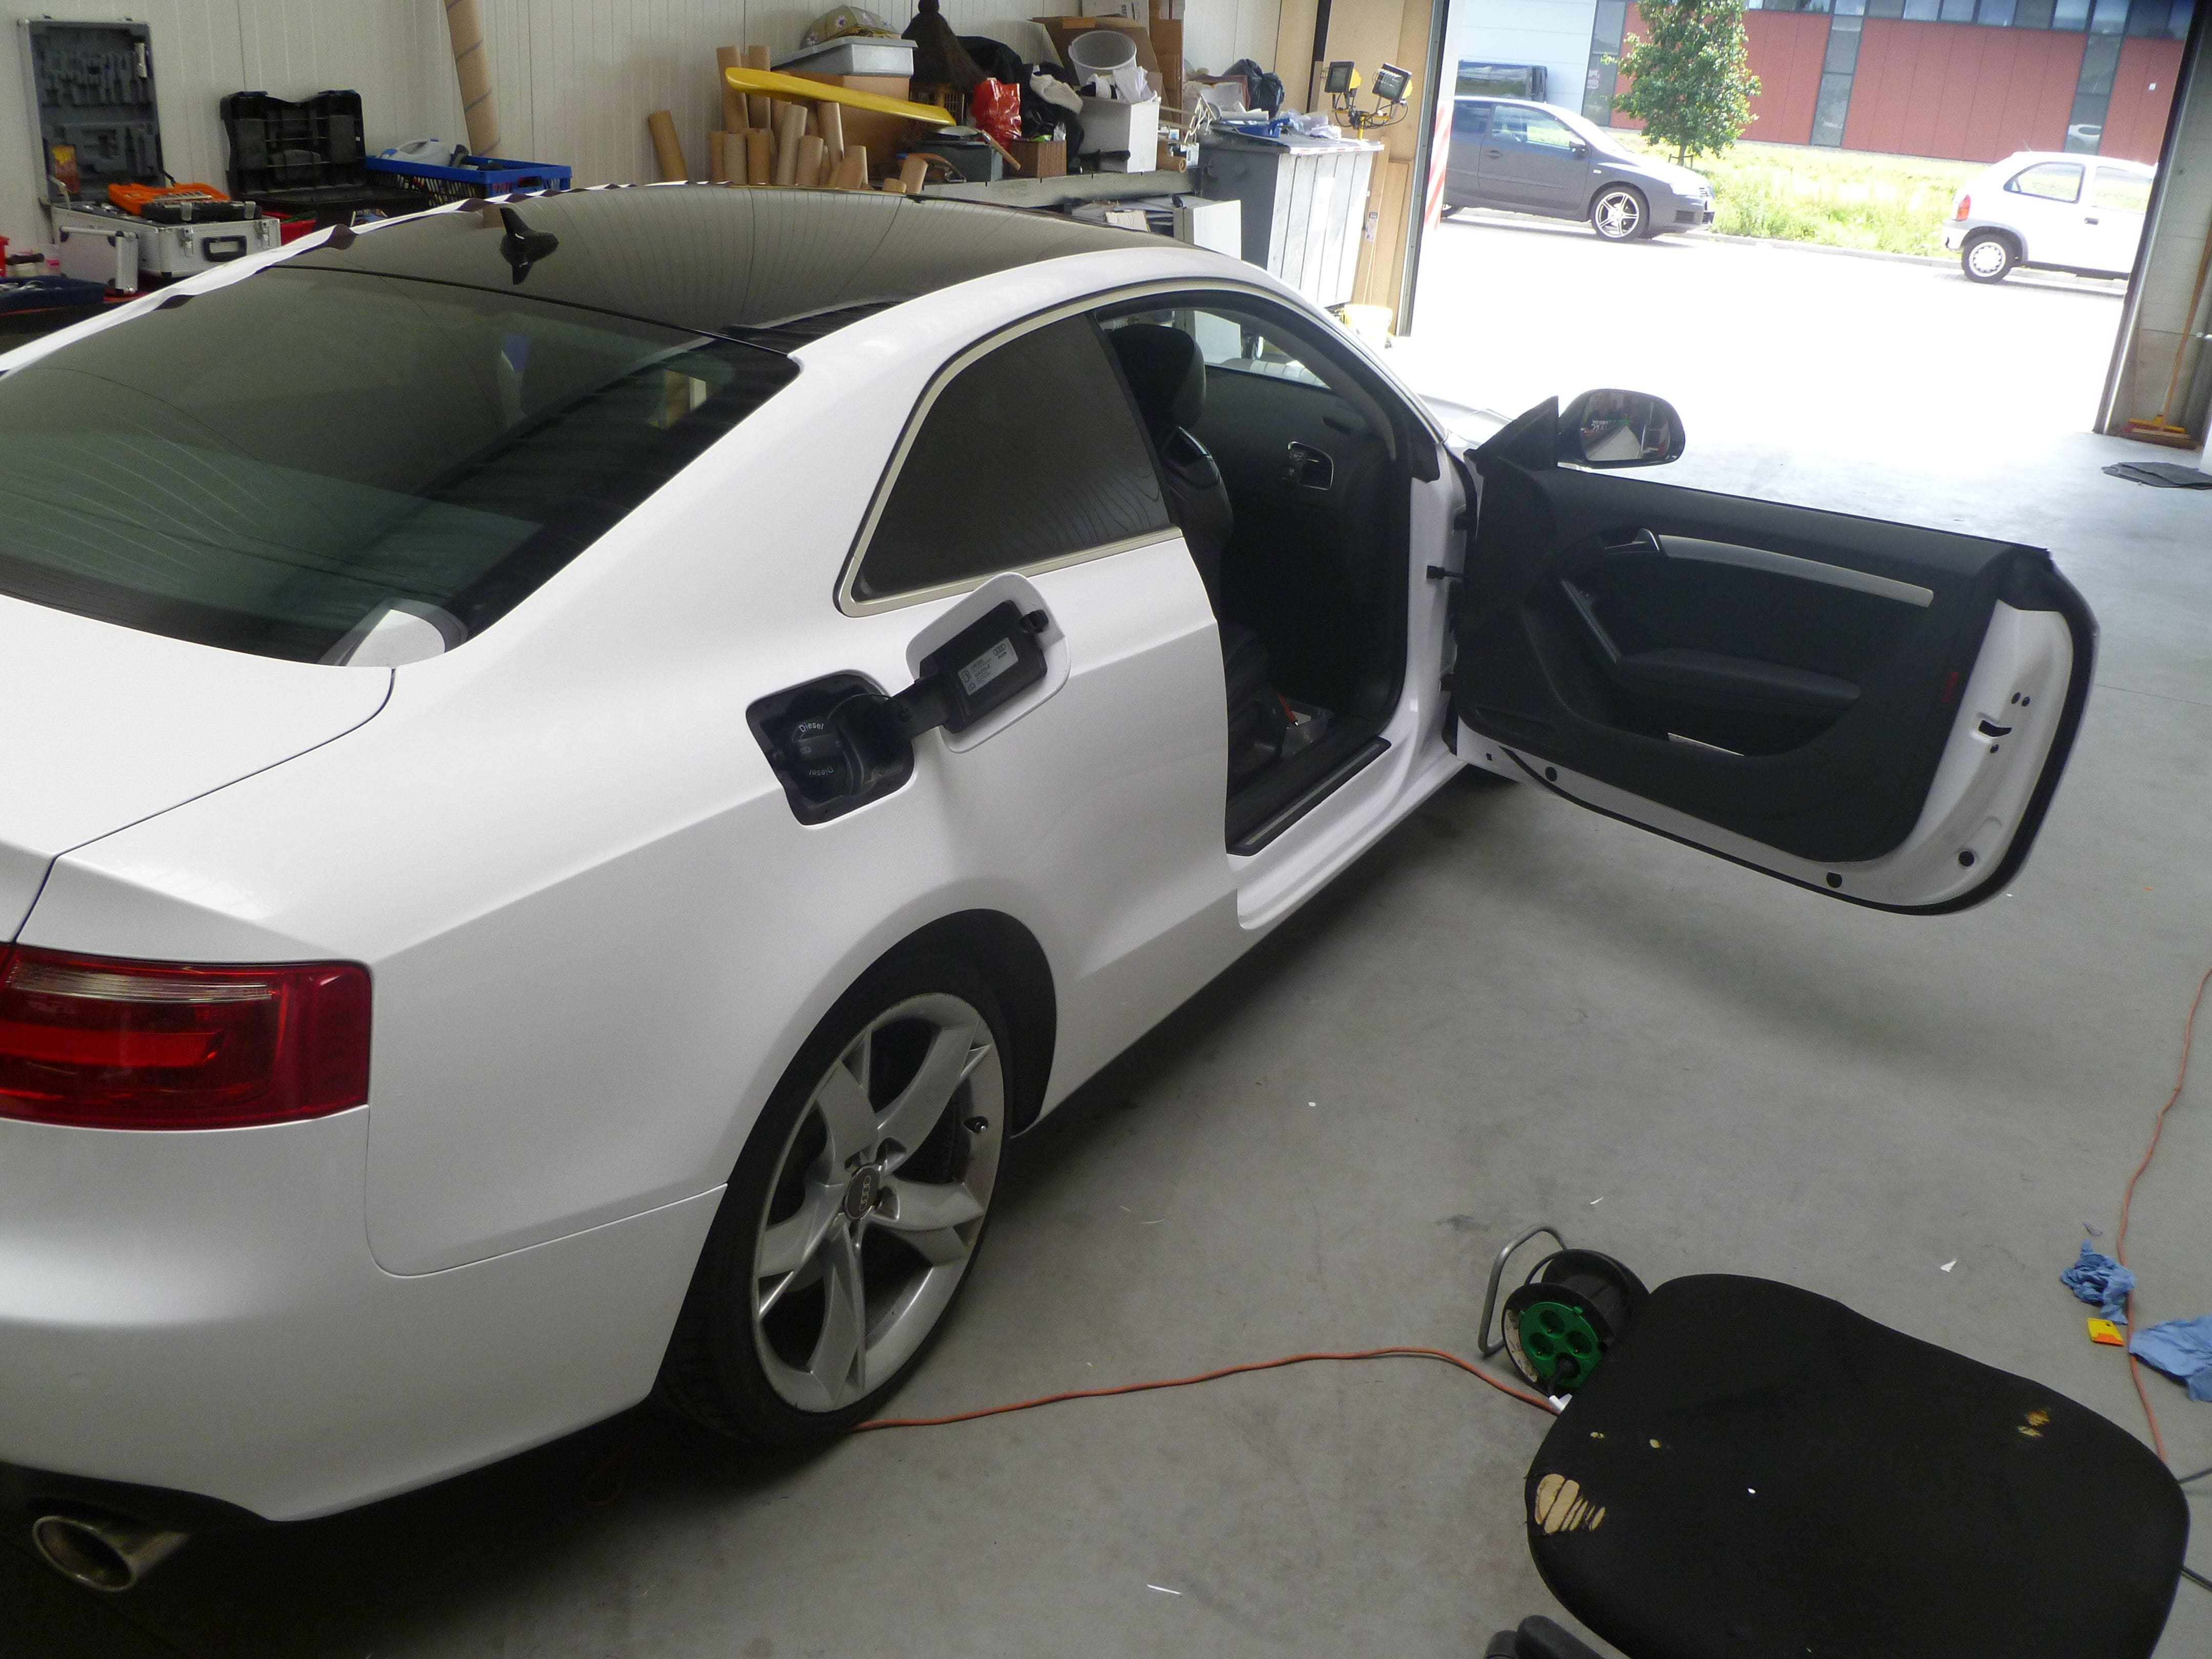 Audi A5 coupe met Metallic Witte Wrap, Carwrapping door Wrapmyride.nu Foto-nr:4731, ©2020